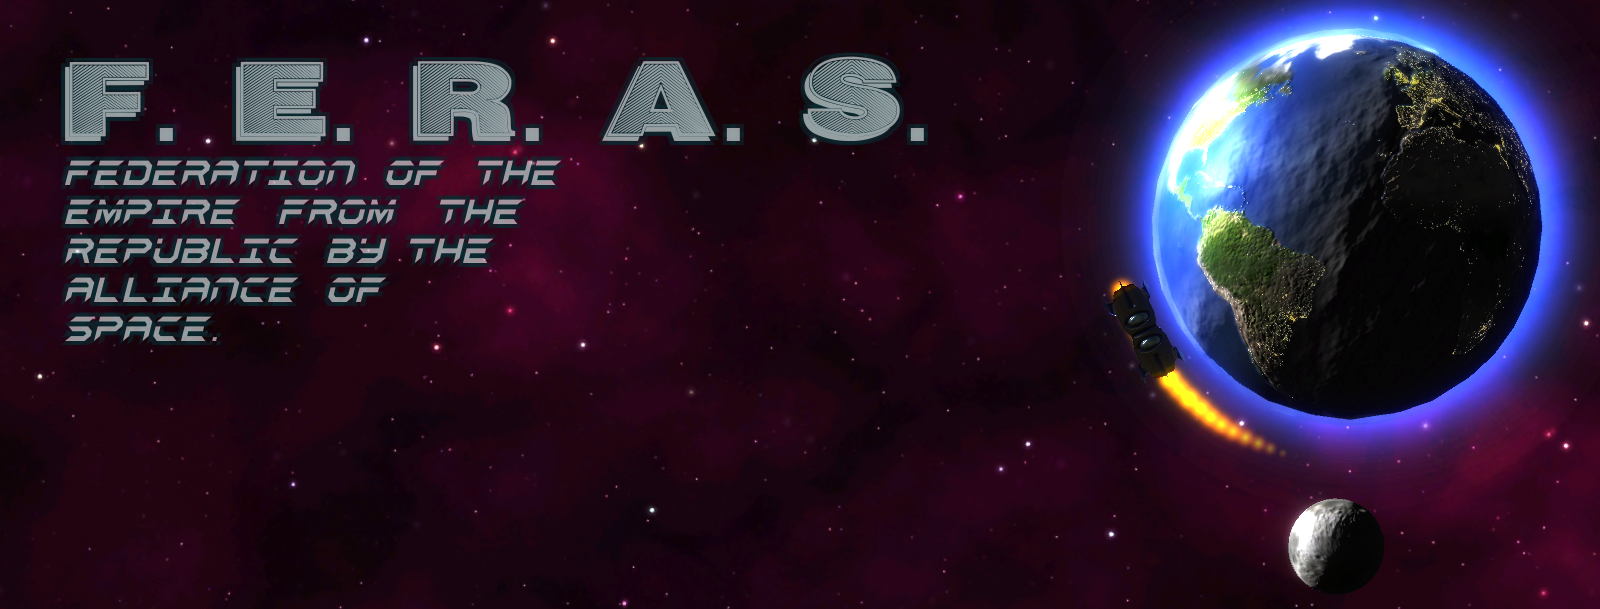 (FERAS) Federation of the Empire from the Republic by the Alliance of SPACE.